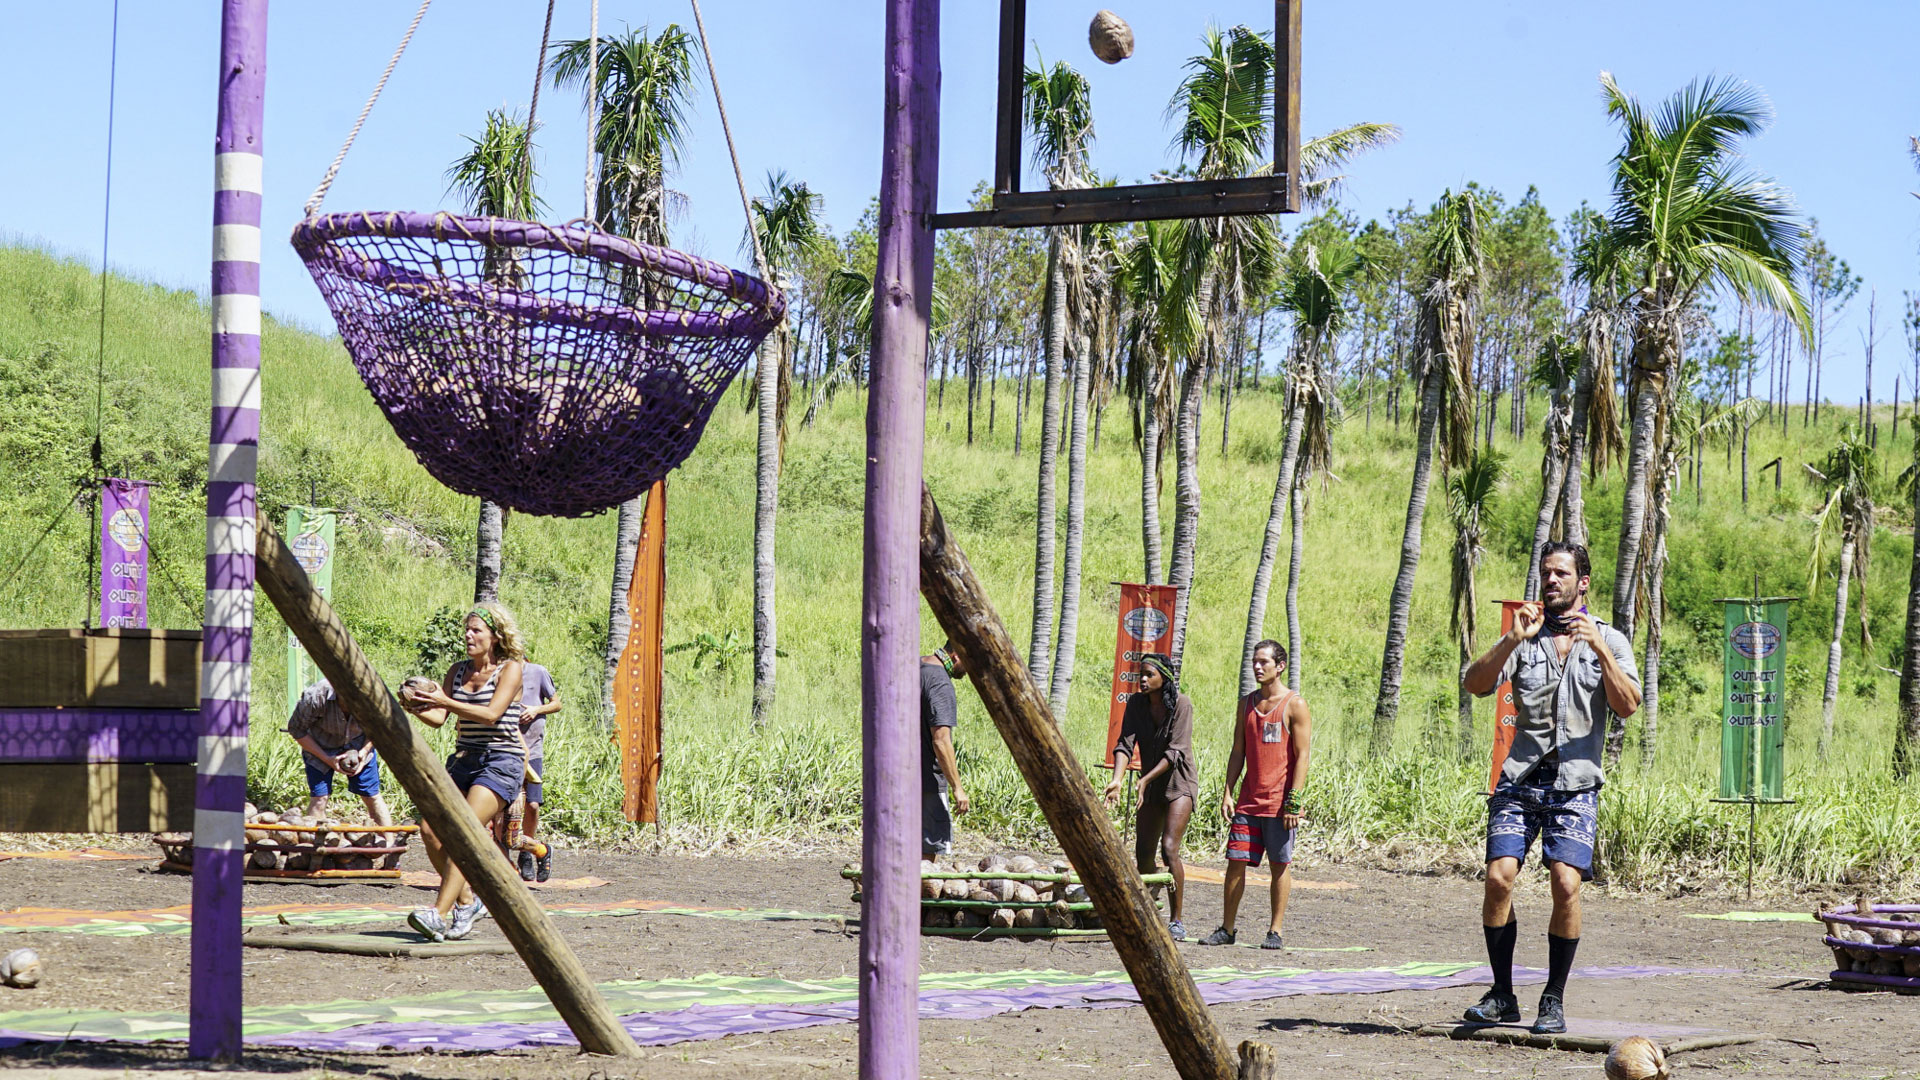 Sunday and Ken try to land their balls into the nets.